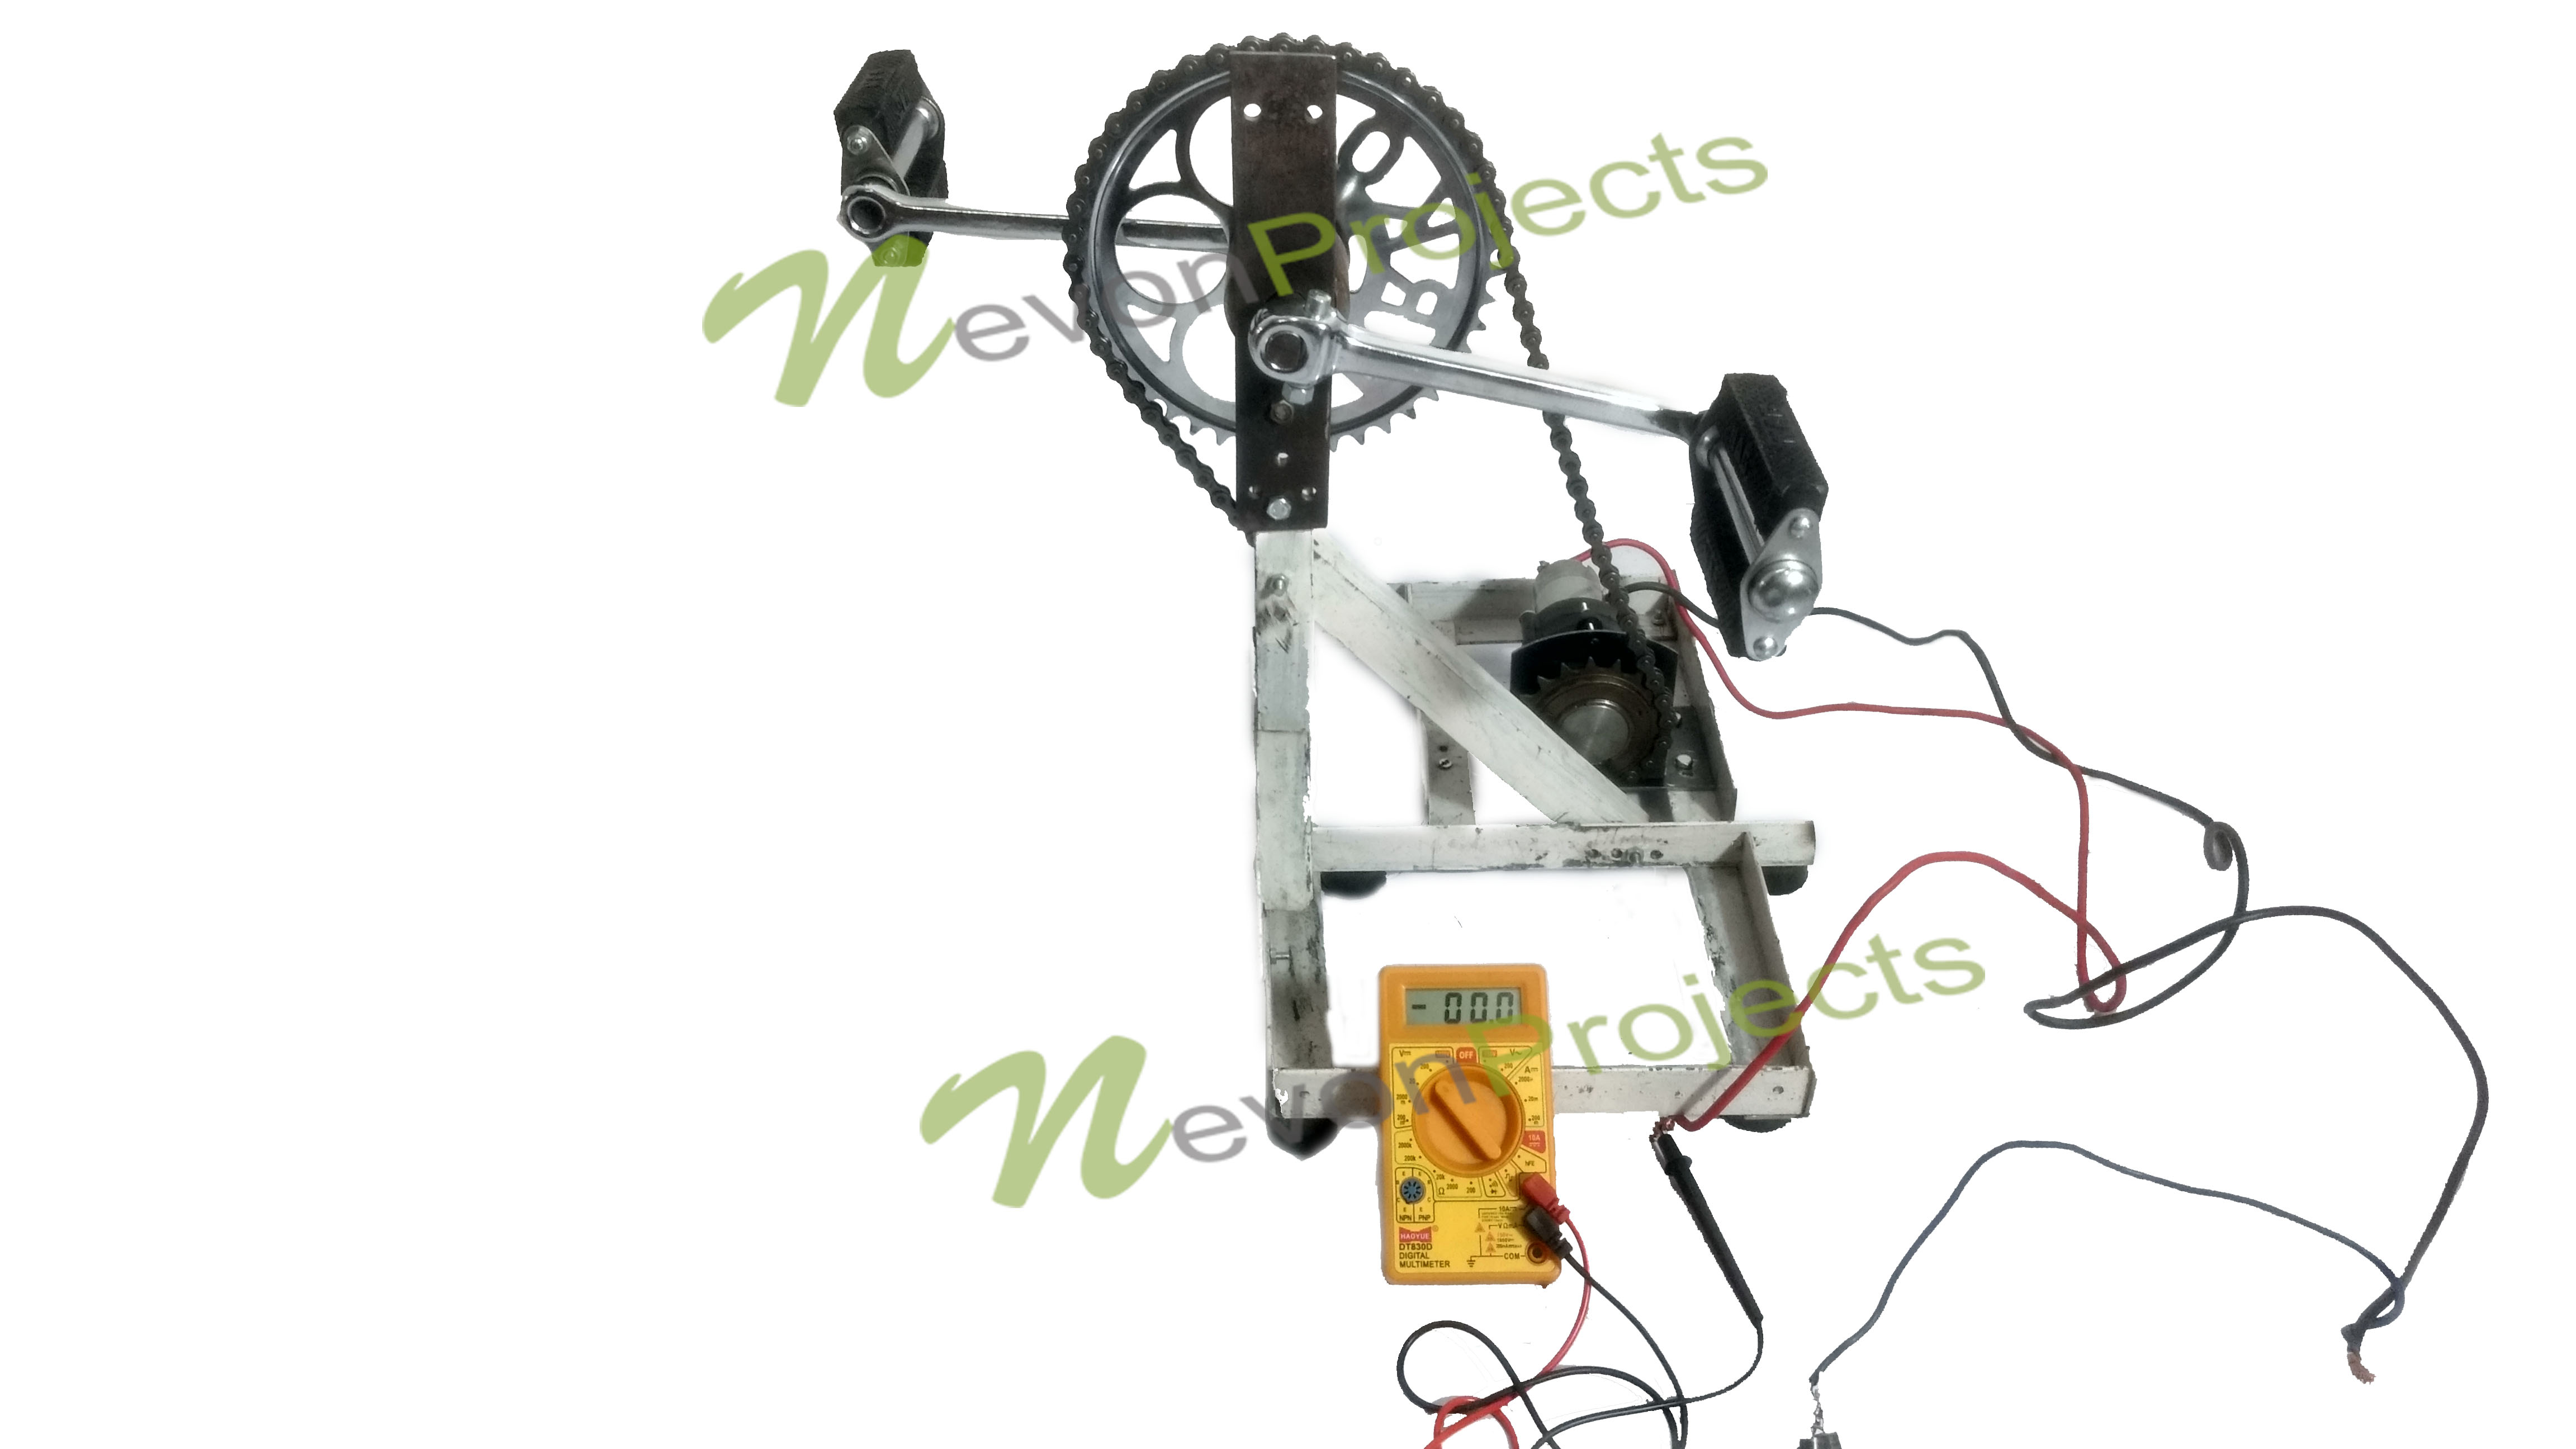 Pedal Powered Electricity Generator Project